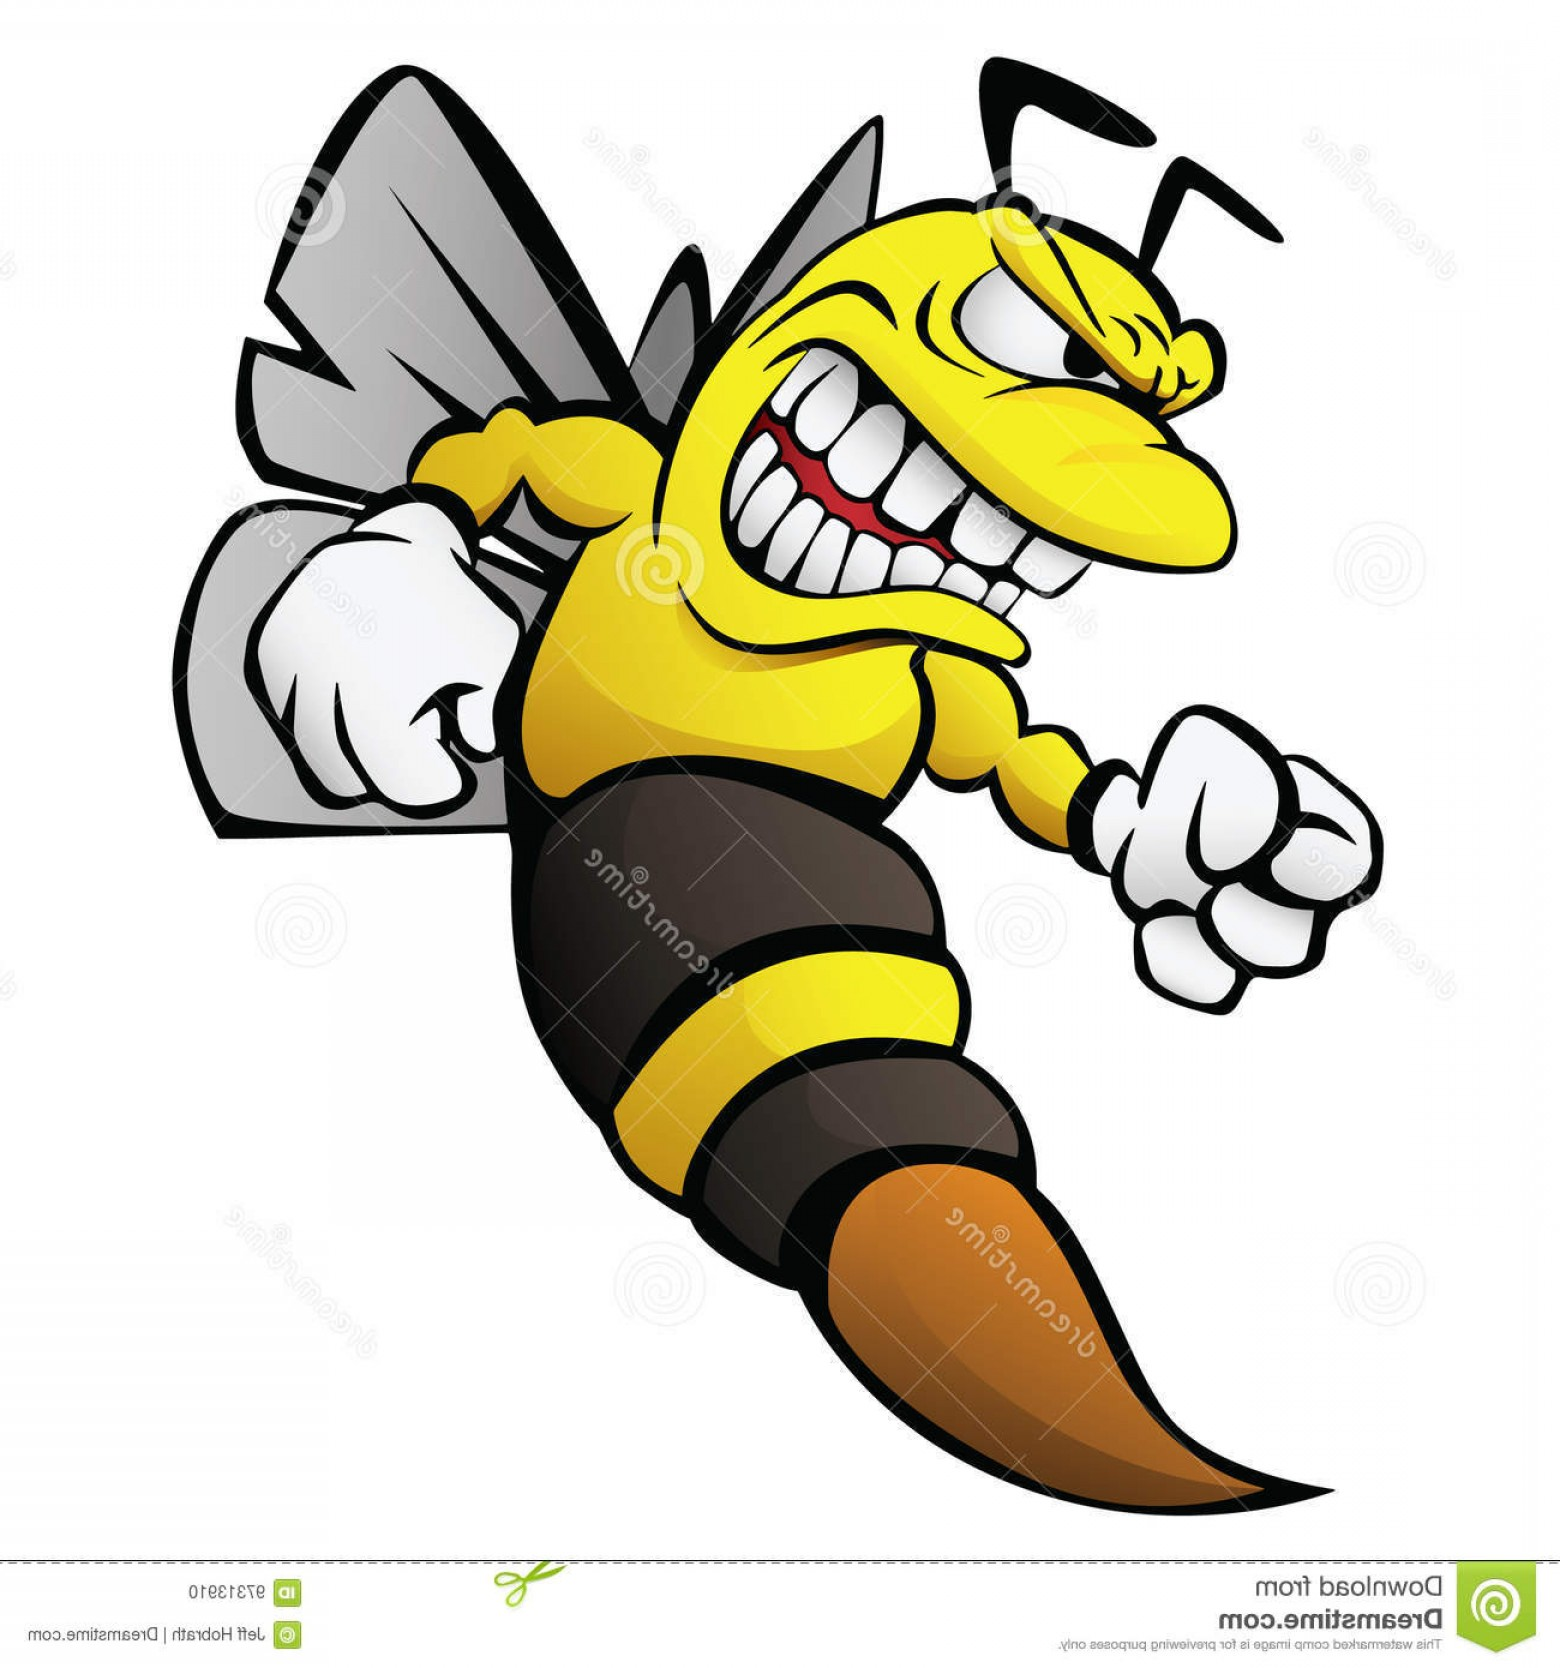 Yellow Jacket Vector Art: Stock Illustration Bee Cartoon Illustration Aggressive Funny Wasp Hornet Yellow Jacket Vector Full Color Flying Ready To Strike Image